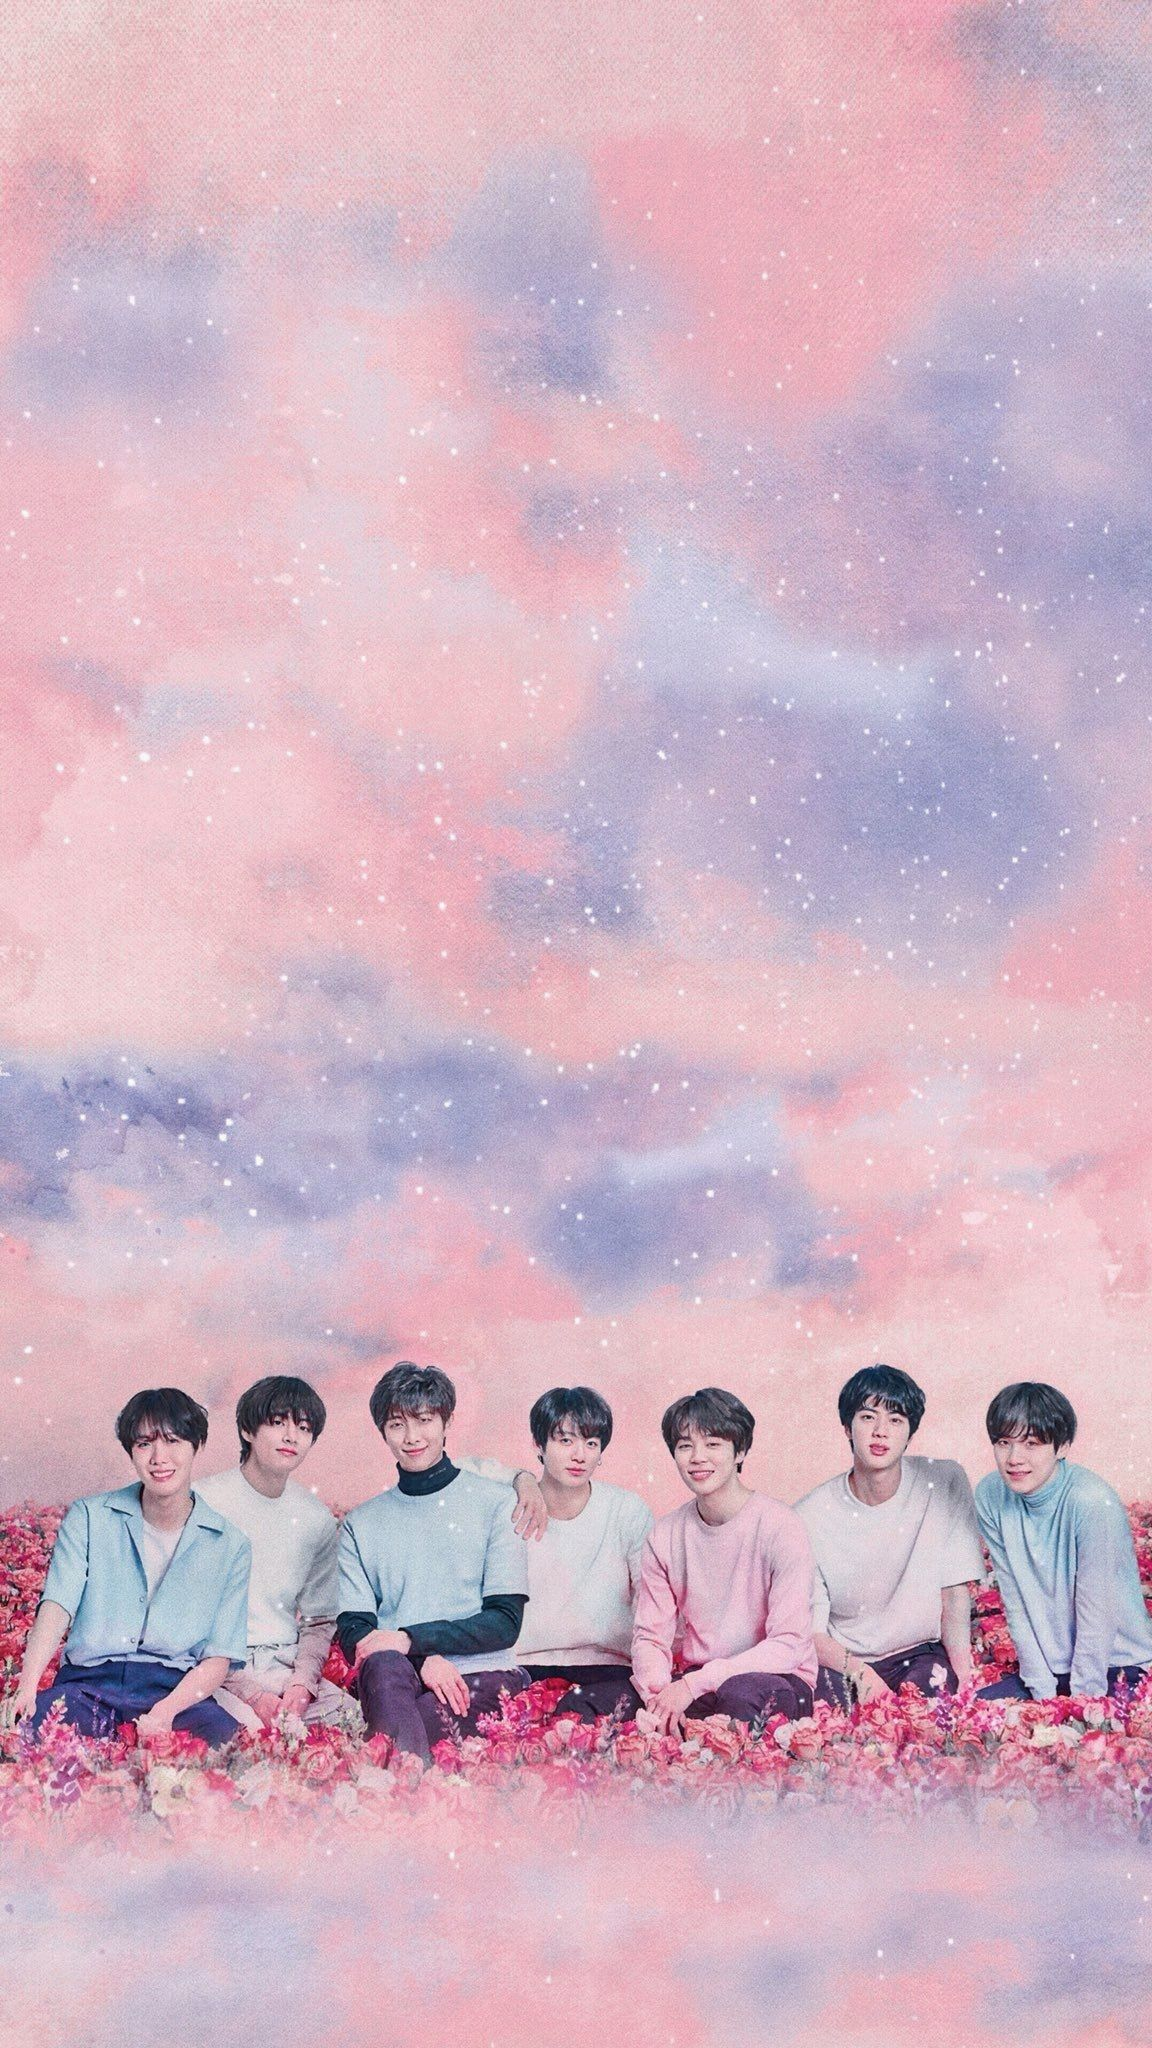 Wallpaper For Iphone Bts Lovely Pin By Rahmah On Bts A Army